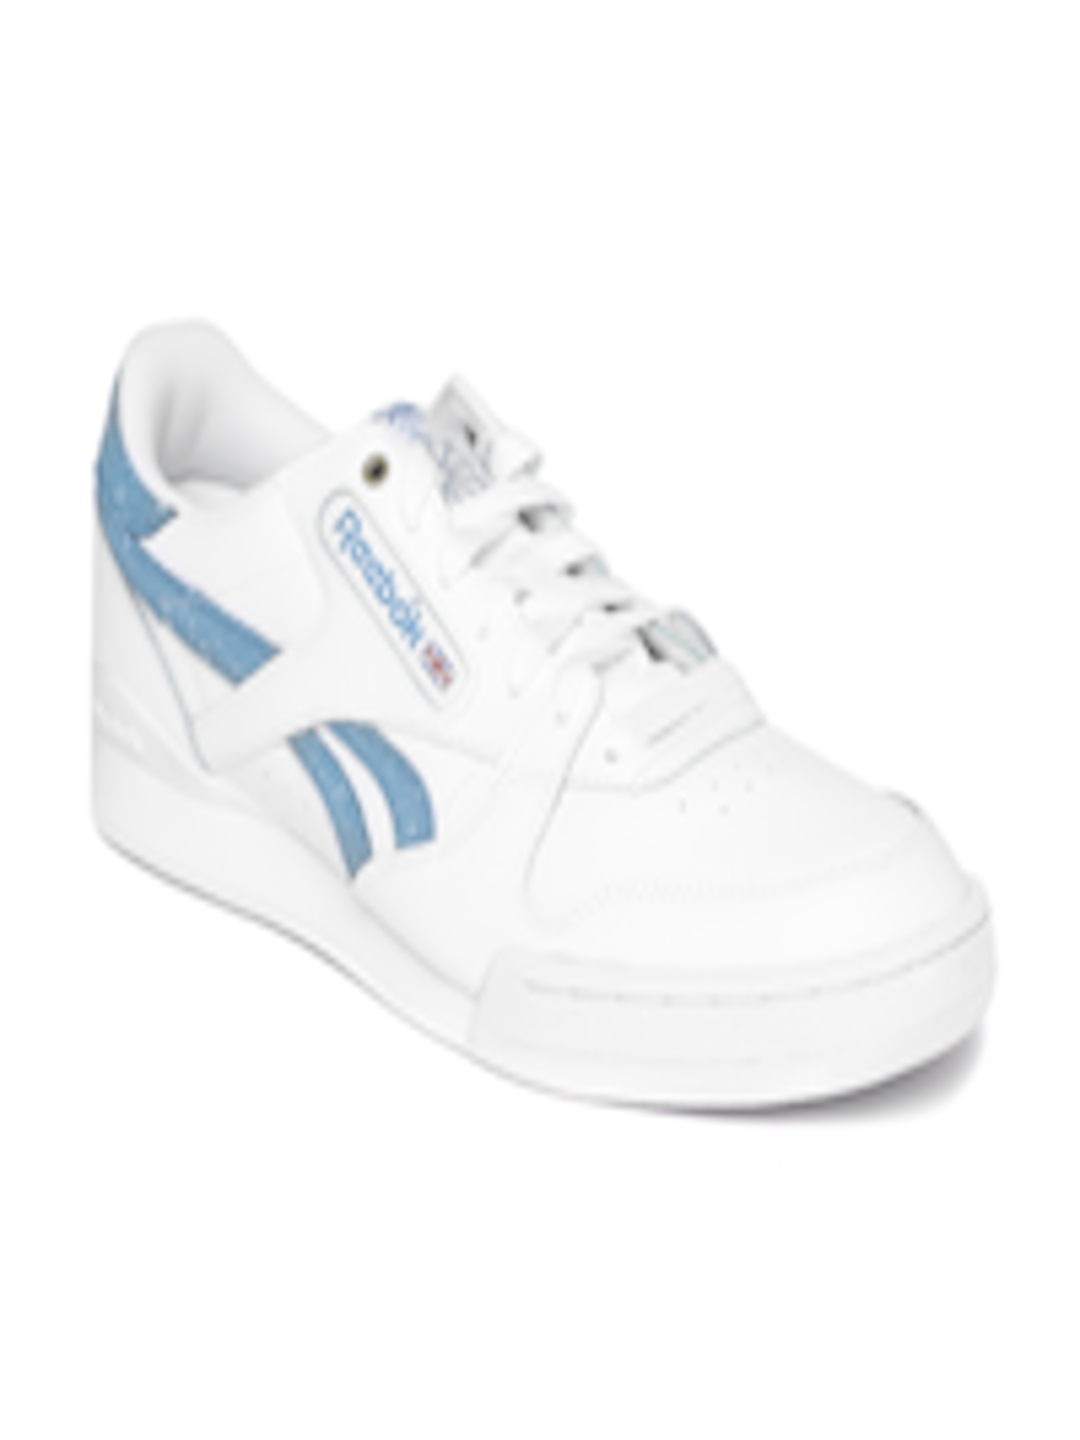 7078cb0f1d533 Buy Reebok Classic Men White PHASE 1 PRO MU Leather Sneakers - Casual Shoes  for Men 6917449